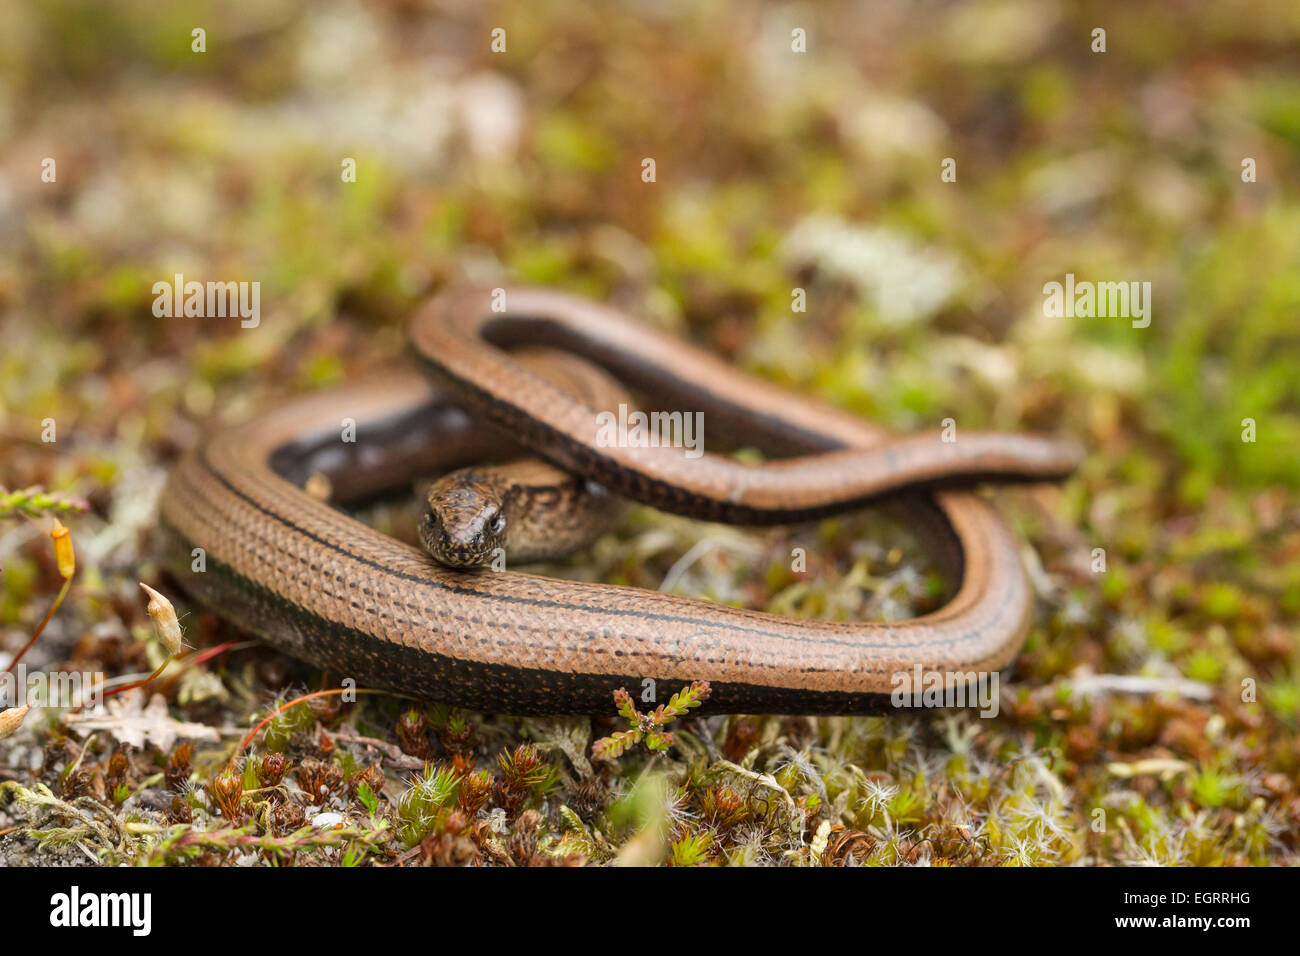 Slow worm Anguis fragilis (controlled conditions), adult female, on heathland vegetation, Arne, Dorset in May. Stock Photo